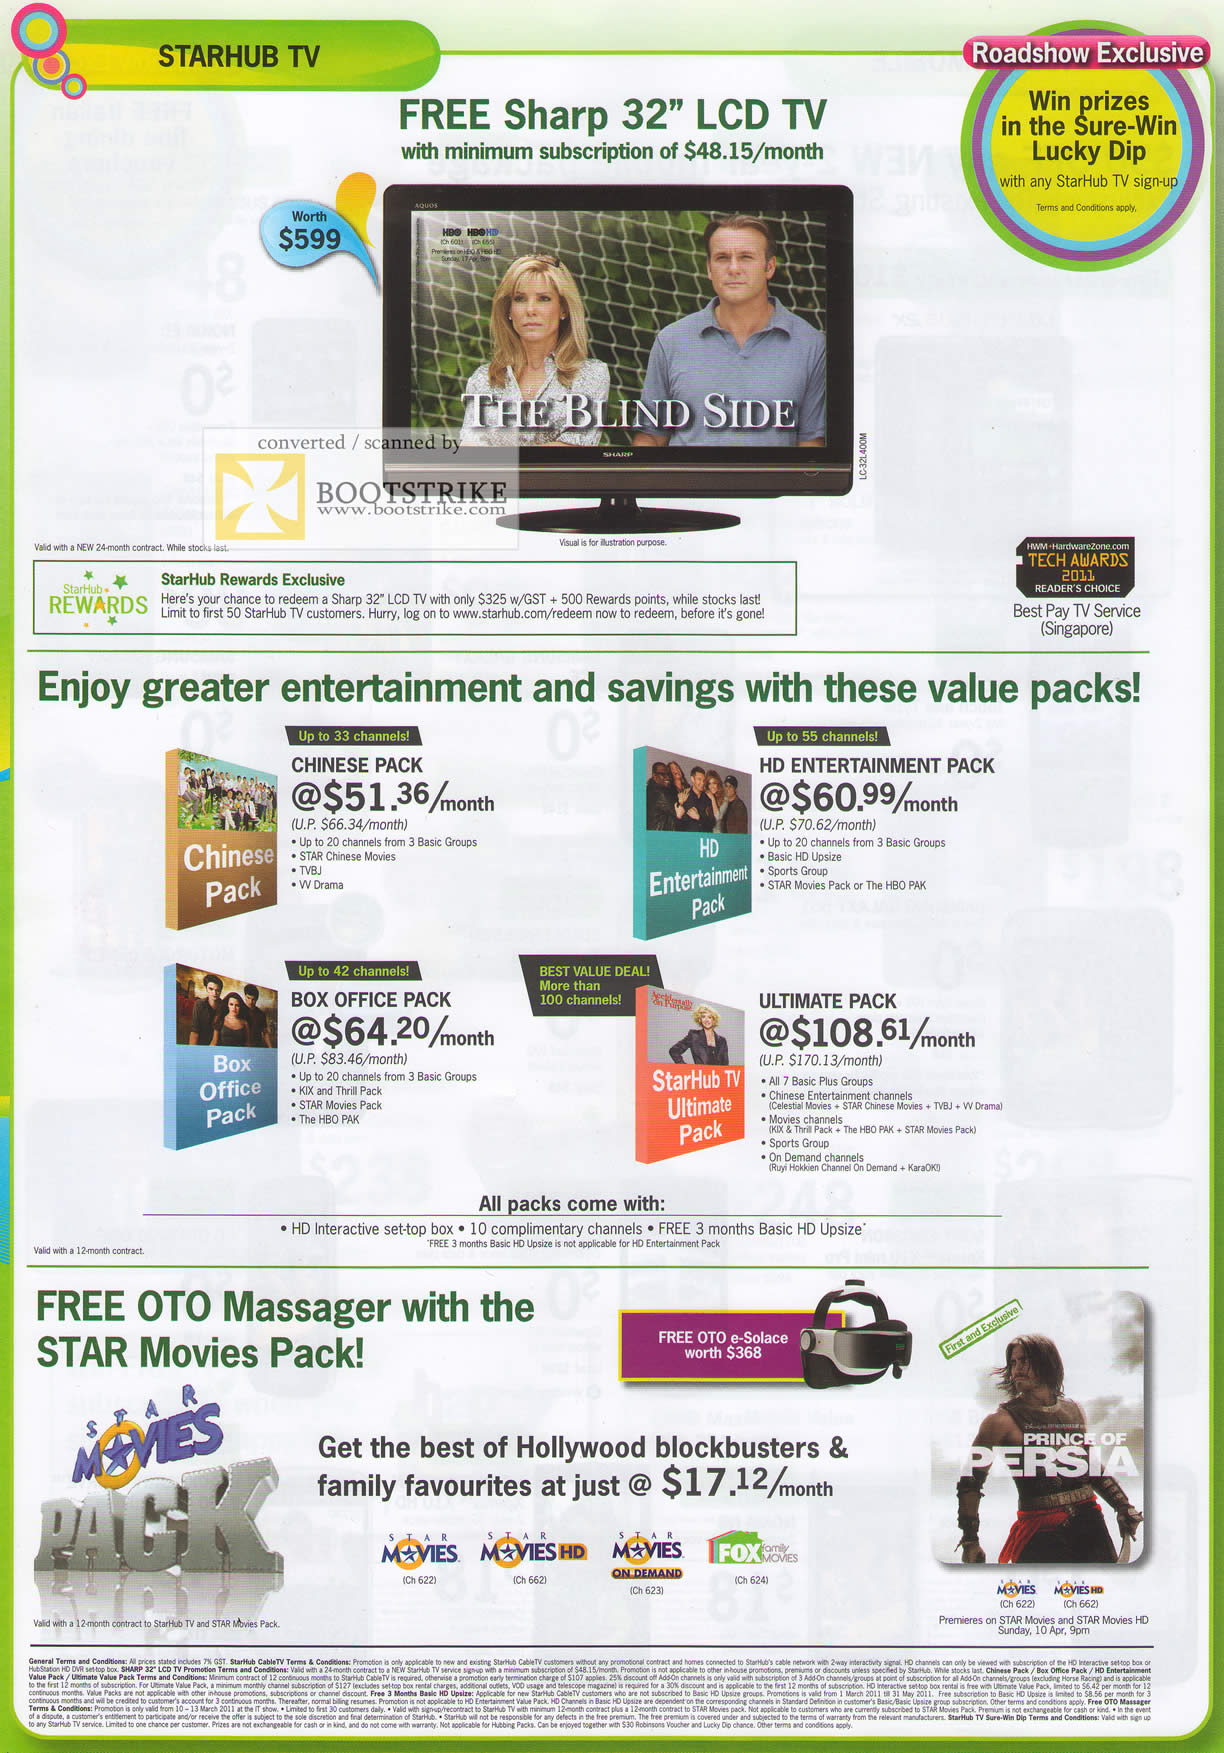 IT Show 2011 price list image brochure of Starhub TV Free Sharp 32 LCD TV Chinese Pack Box Office HD Ultimate Pack OTO Massager